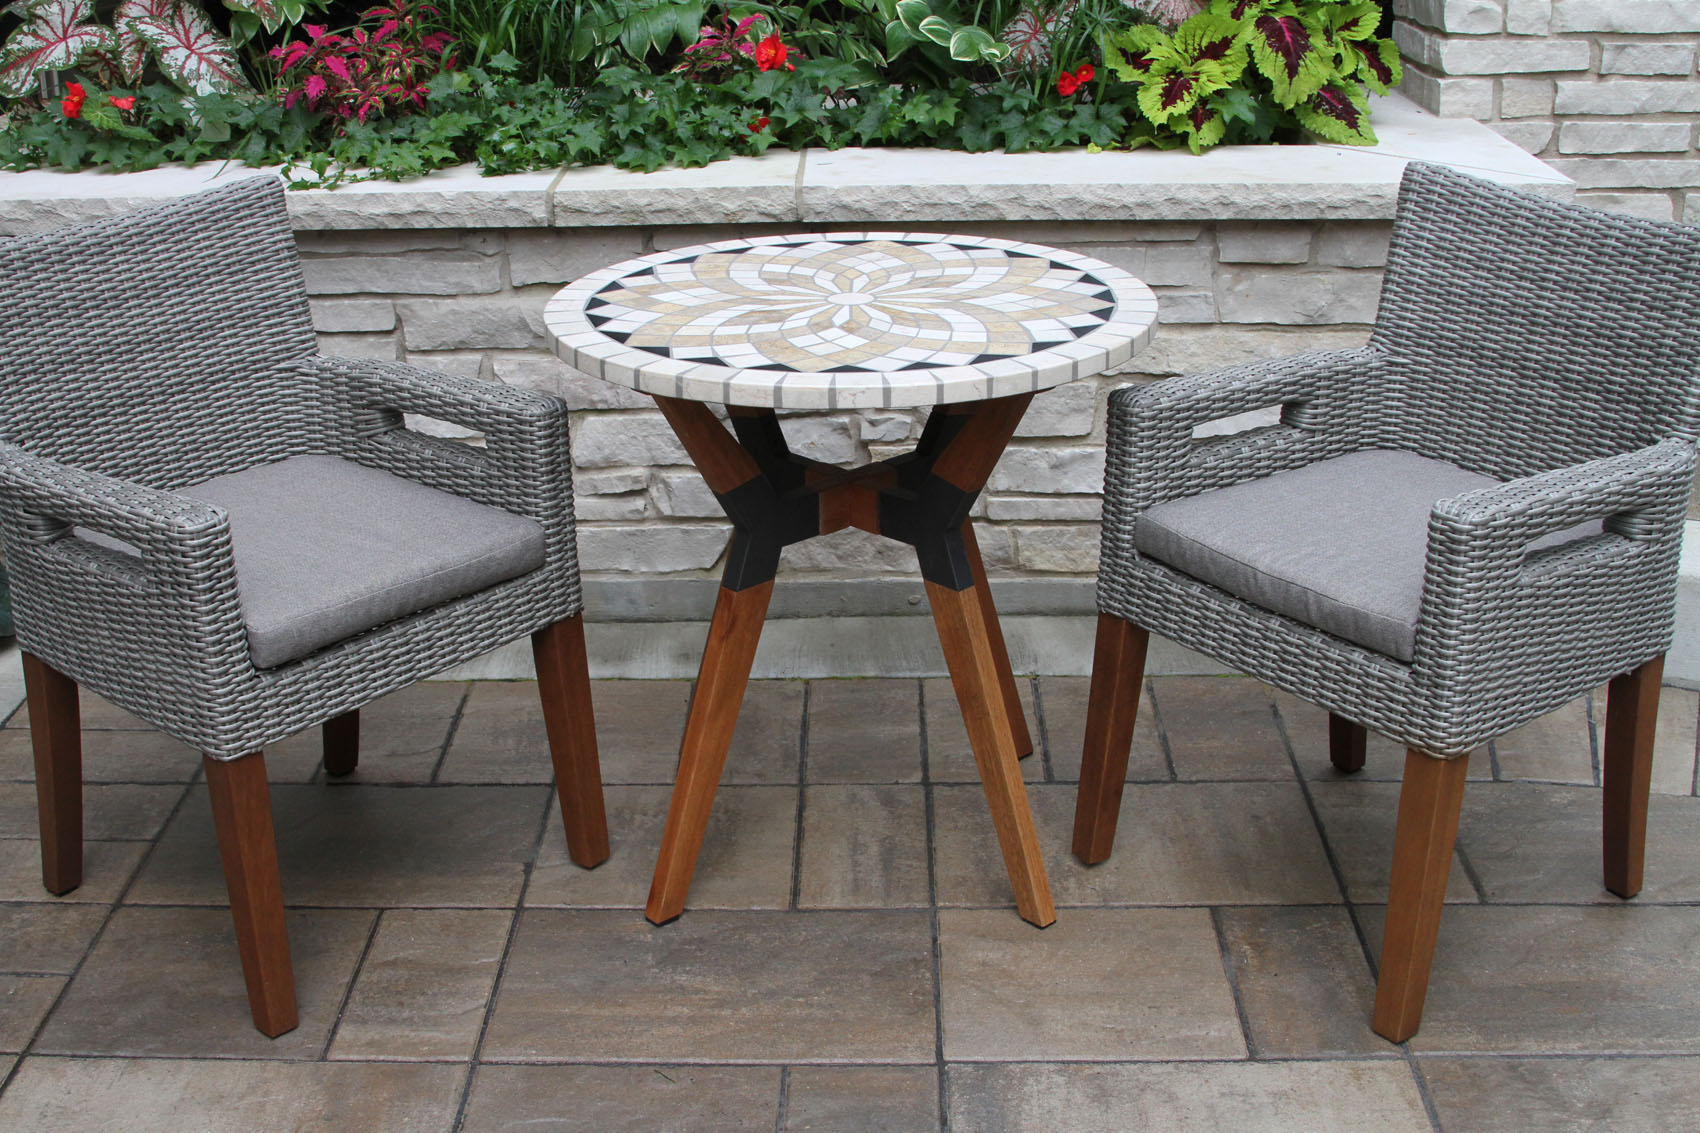 marble mosaic bistro table top with mixed material base wicker eucalyptus arm chairs olefin cushions accent trestle bench legs ethan allen round pedestal uttermost end tables inch